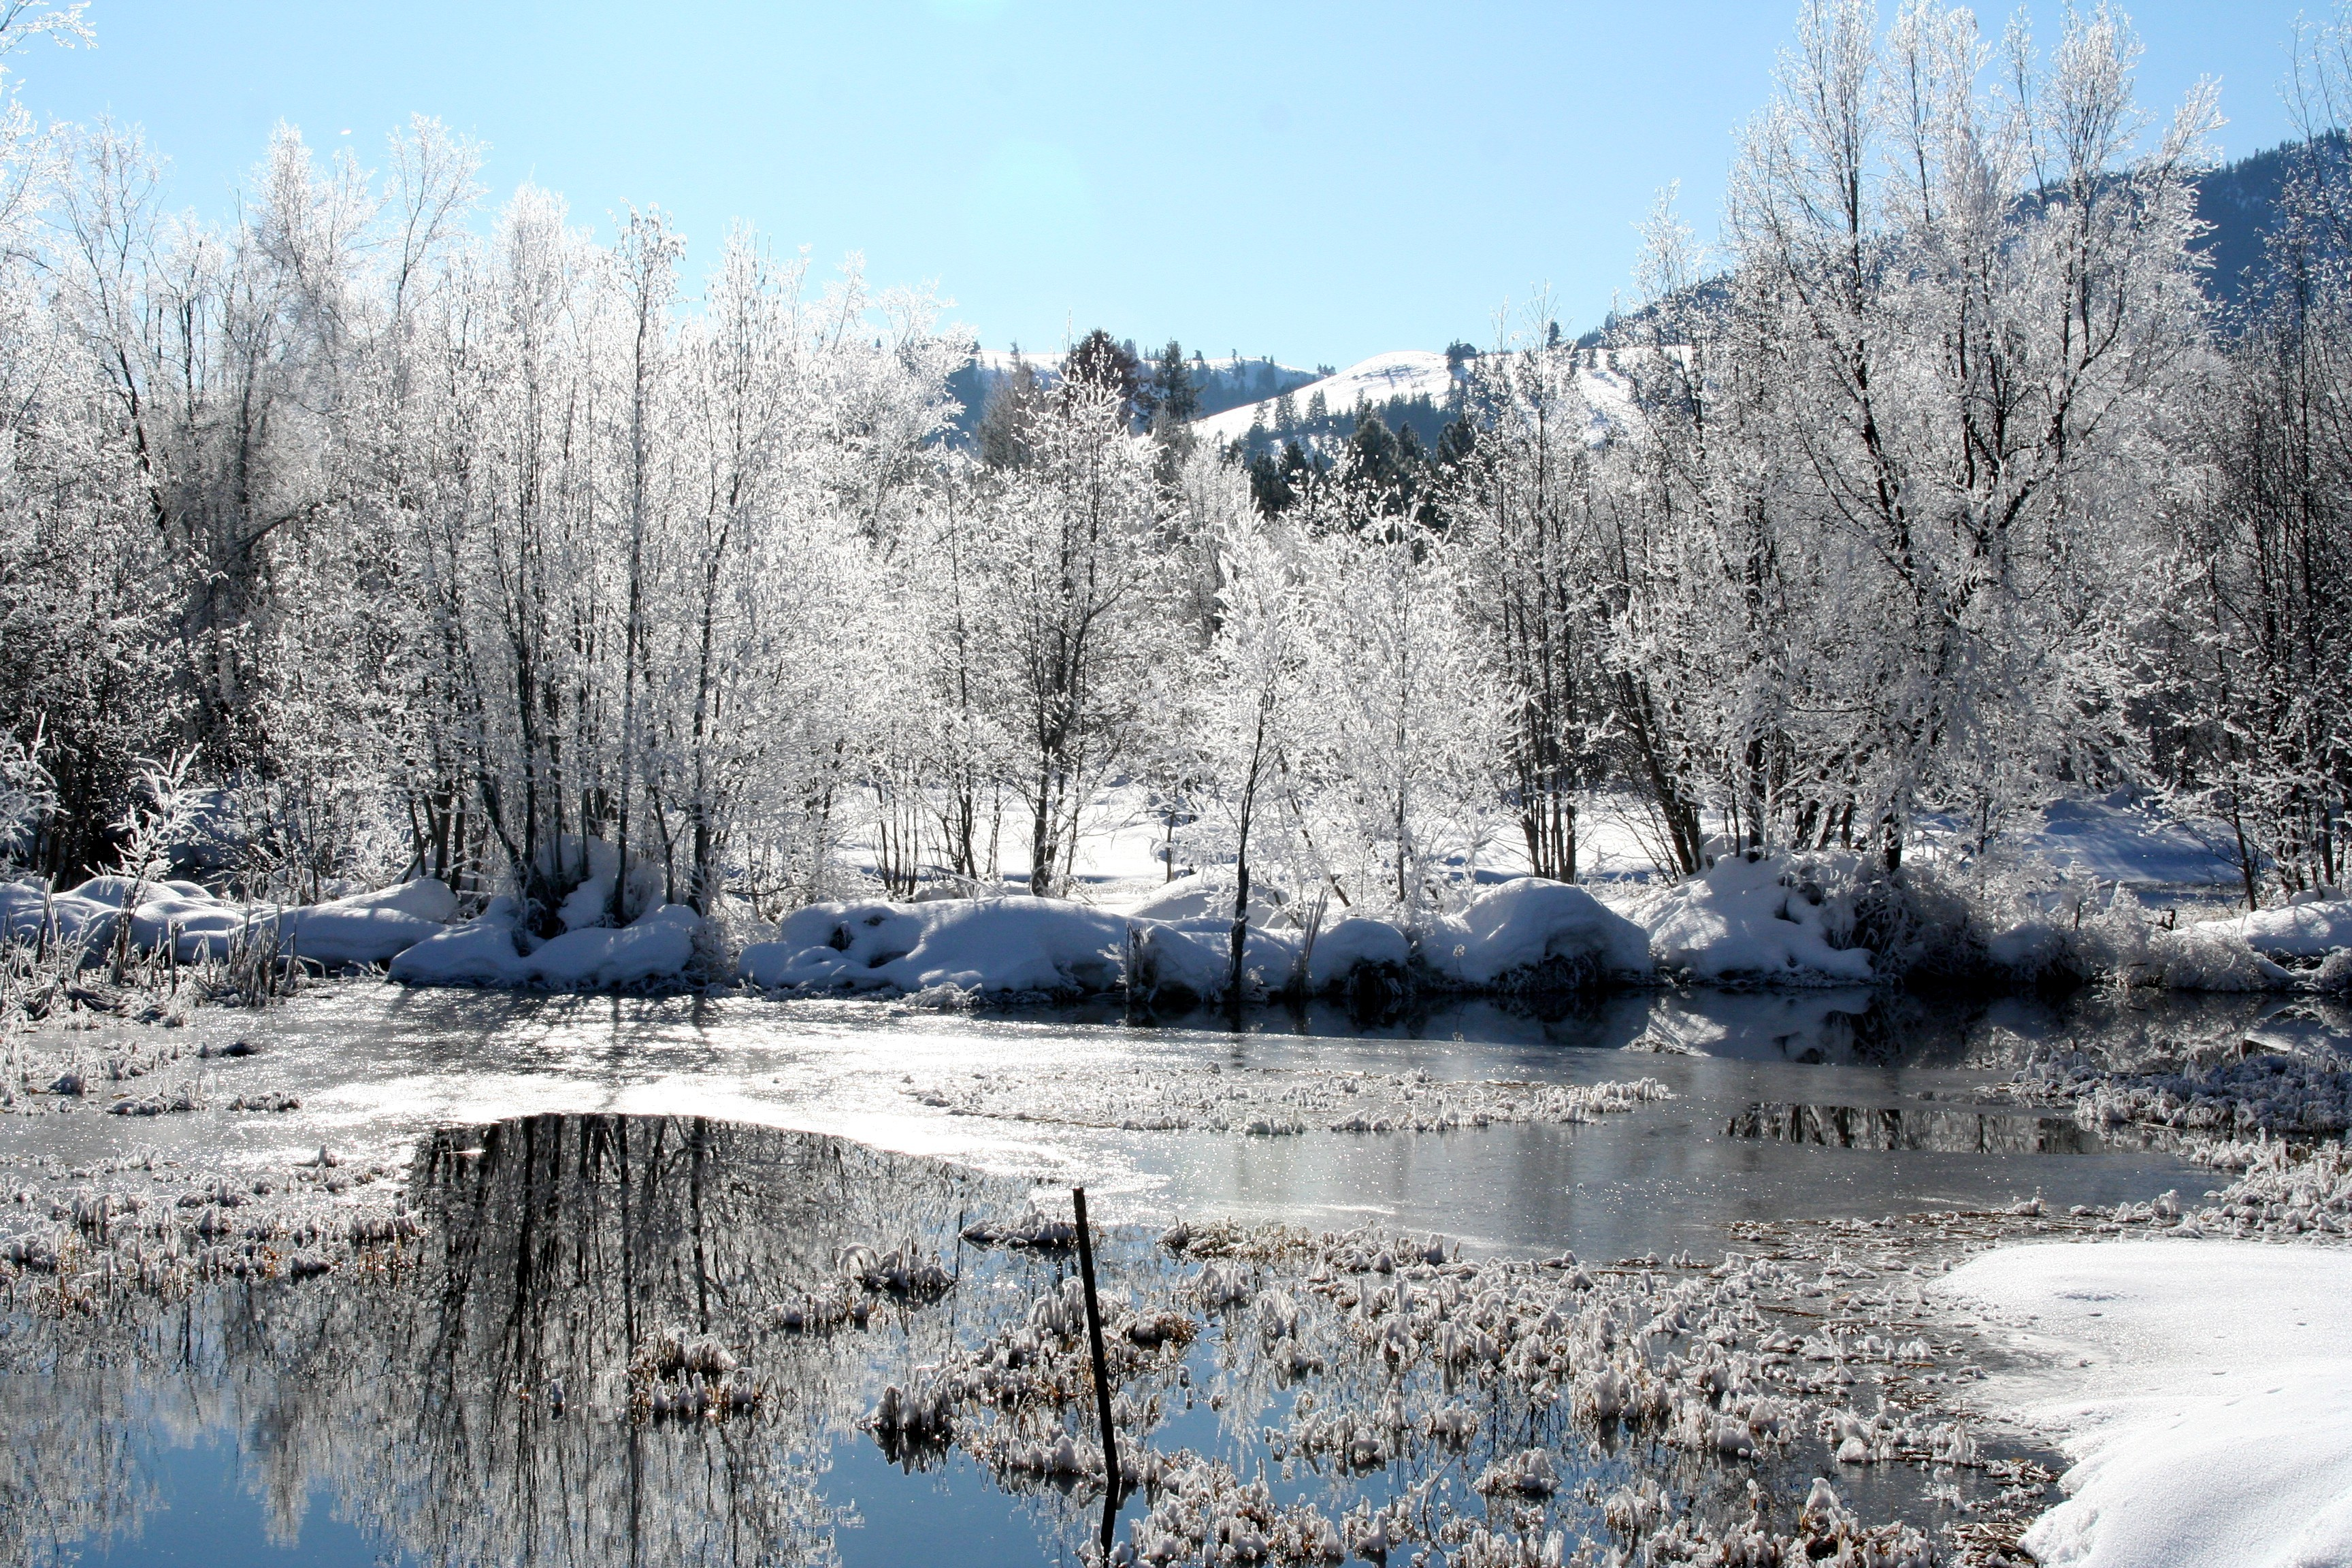 WDFW - Methow Wildlife Area - Big Valley Unit Wint